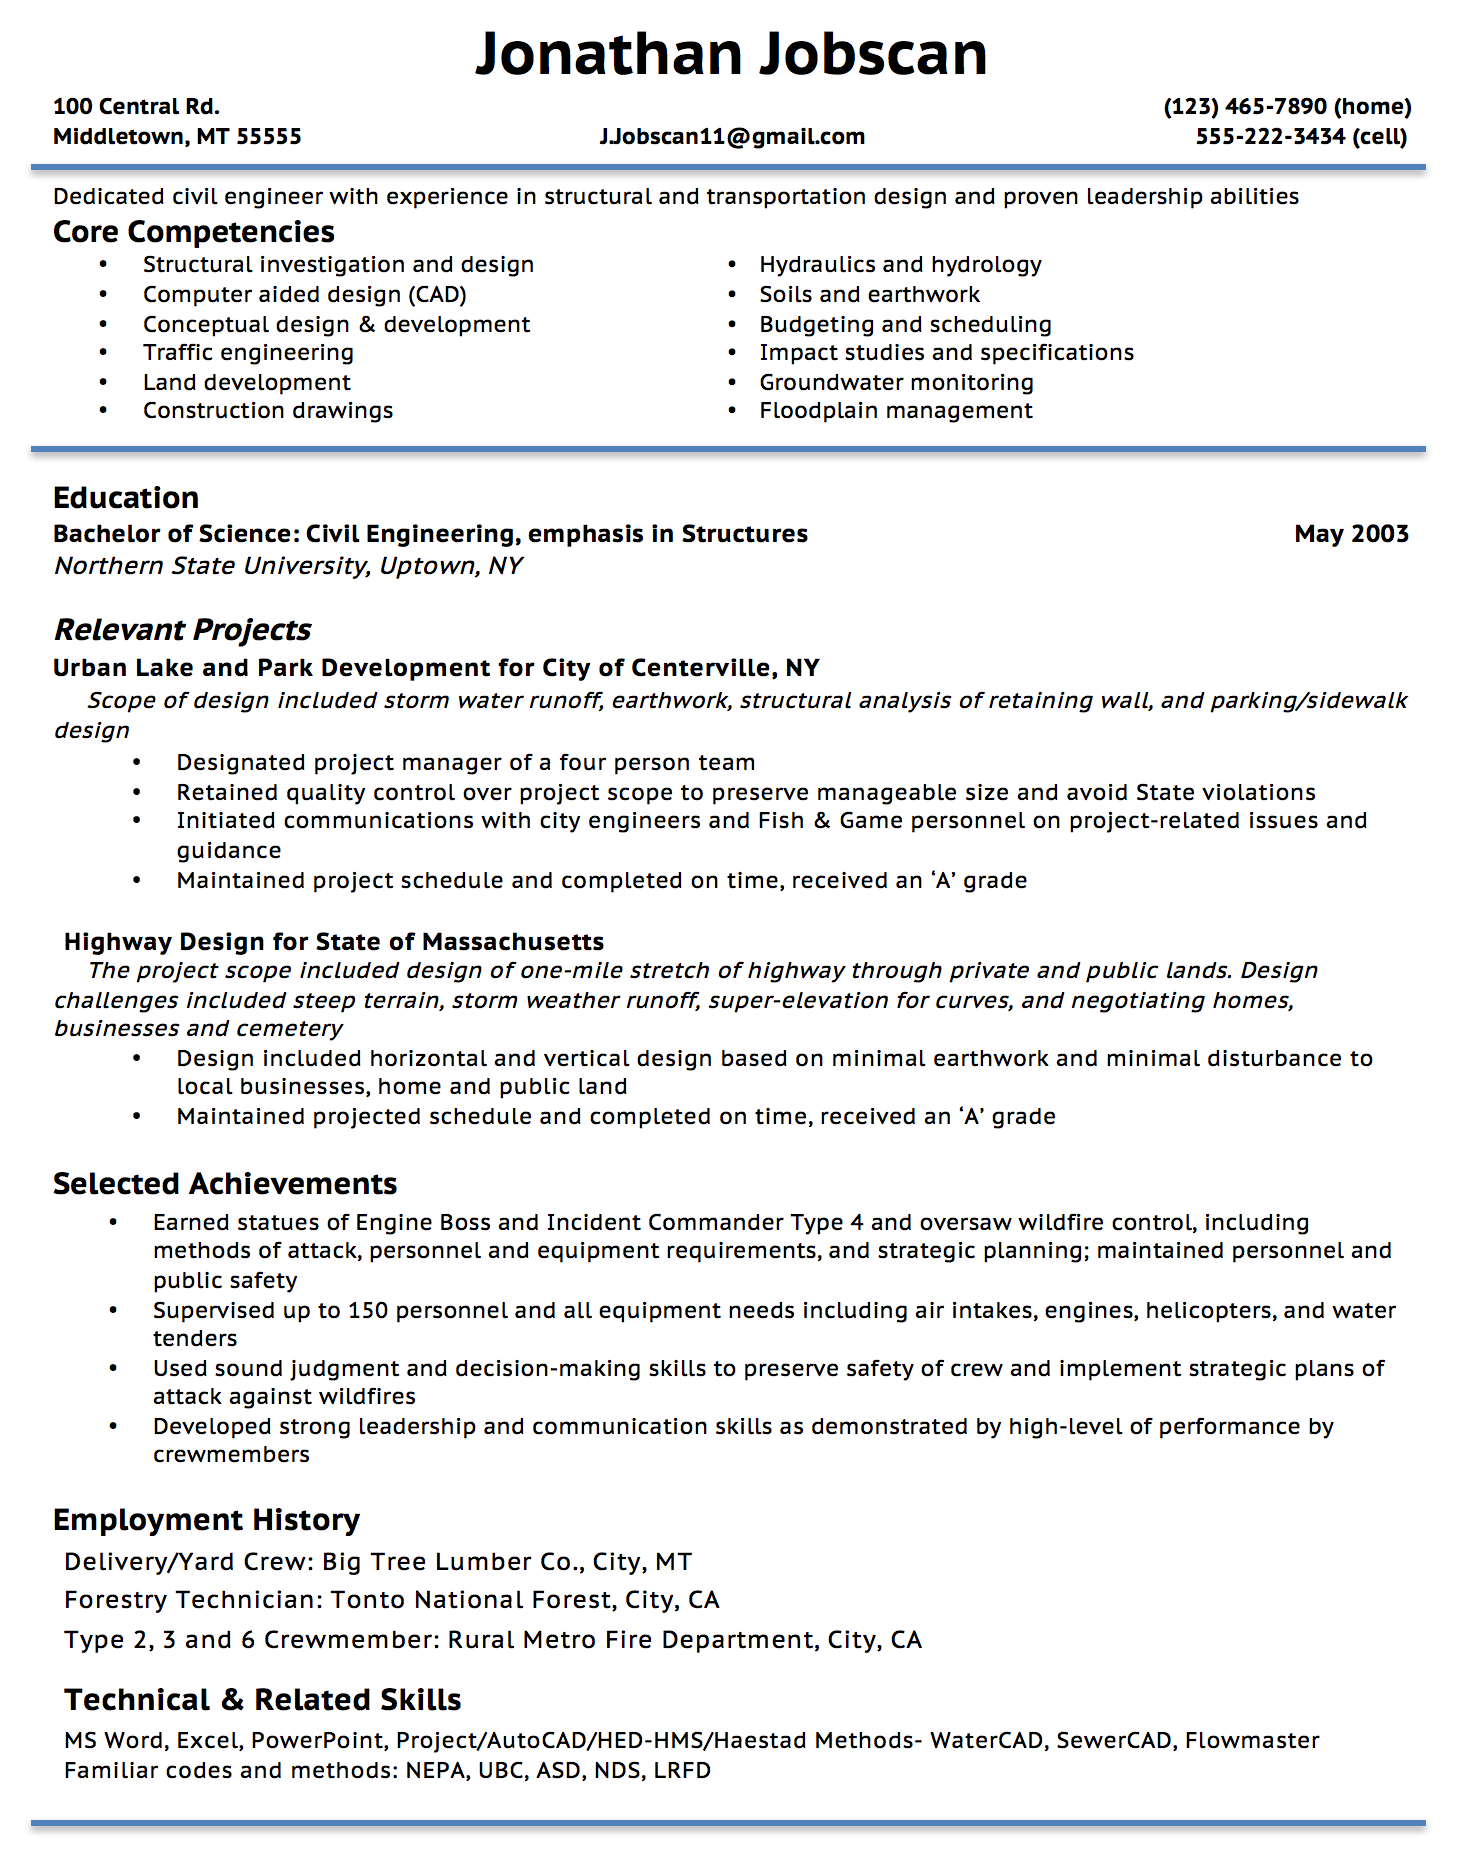 Opposenewapstandardsus  Inspiring Resume Writing Guide  Jobscan With Excellent Example Of A Functional Resume Format With Divine Top Resume Builder Also Examples Of Rn Resumes In Addition Sample Mechanical Engineering Resume And How To Make Job Resume As Well As Email Resume Examples Additionally Computer Science Resume Examples From Jobscanco With Opposenewapstandardsus  Excellent Resume Writing Guide  Jobscan With Divine Example Of A Functional Resume Format And Inspiring Top Resume Builder Also Examples Of Rn Resumes In Addition Sample Mechanical Engineering Resume From Jobscanco